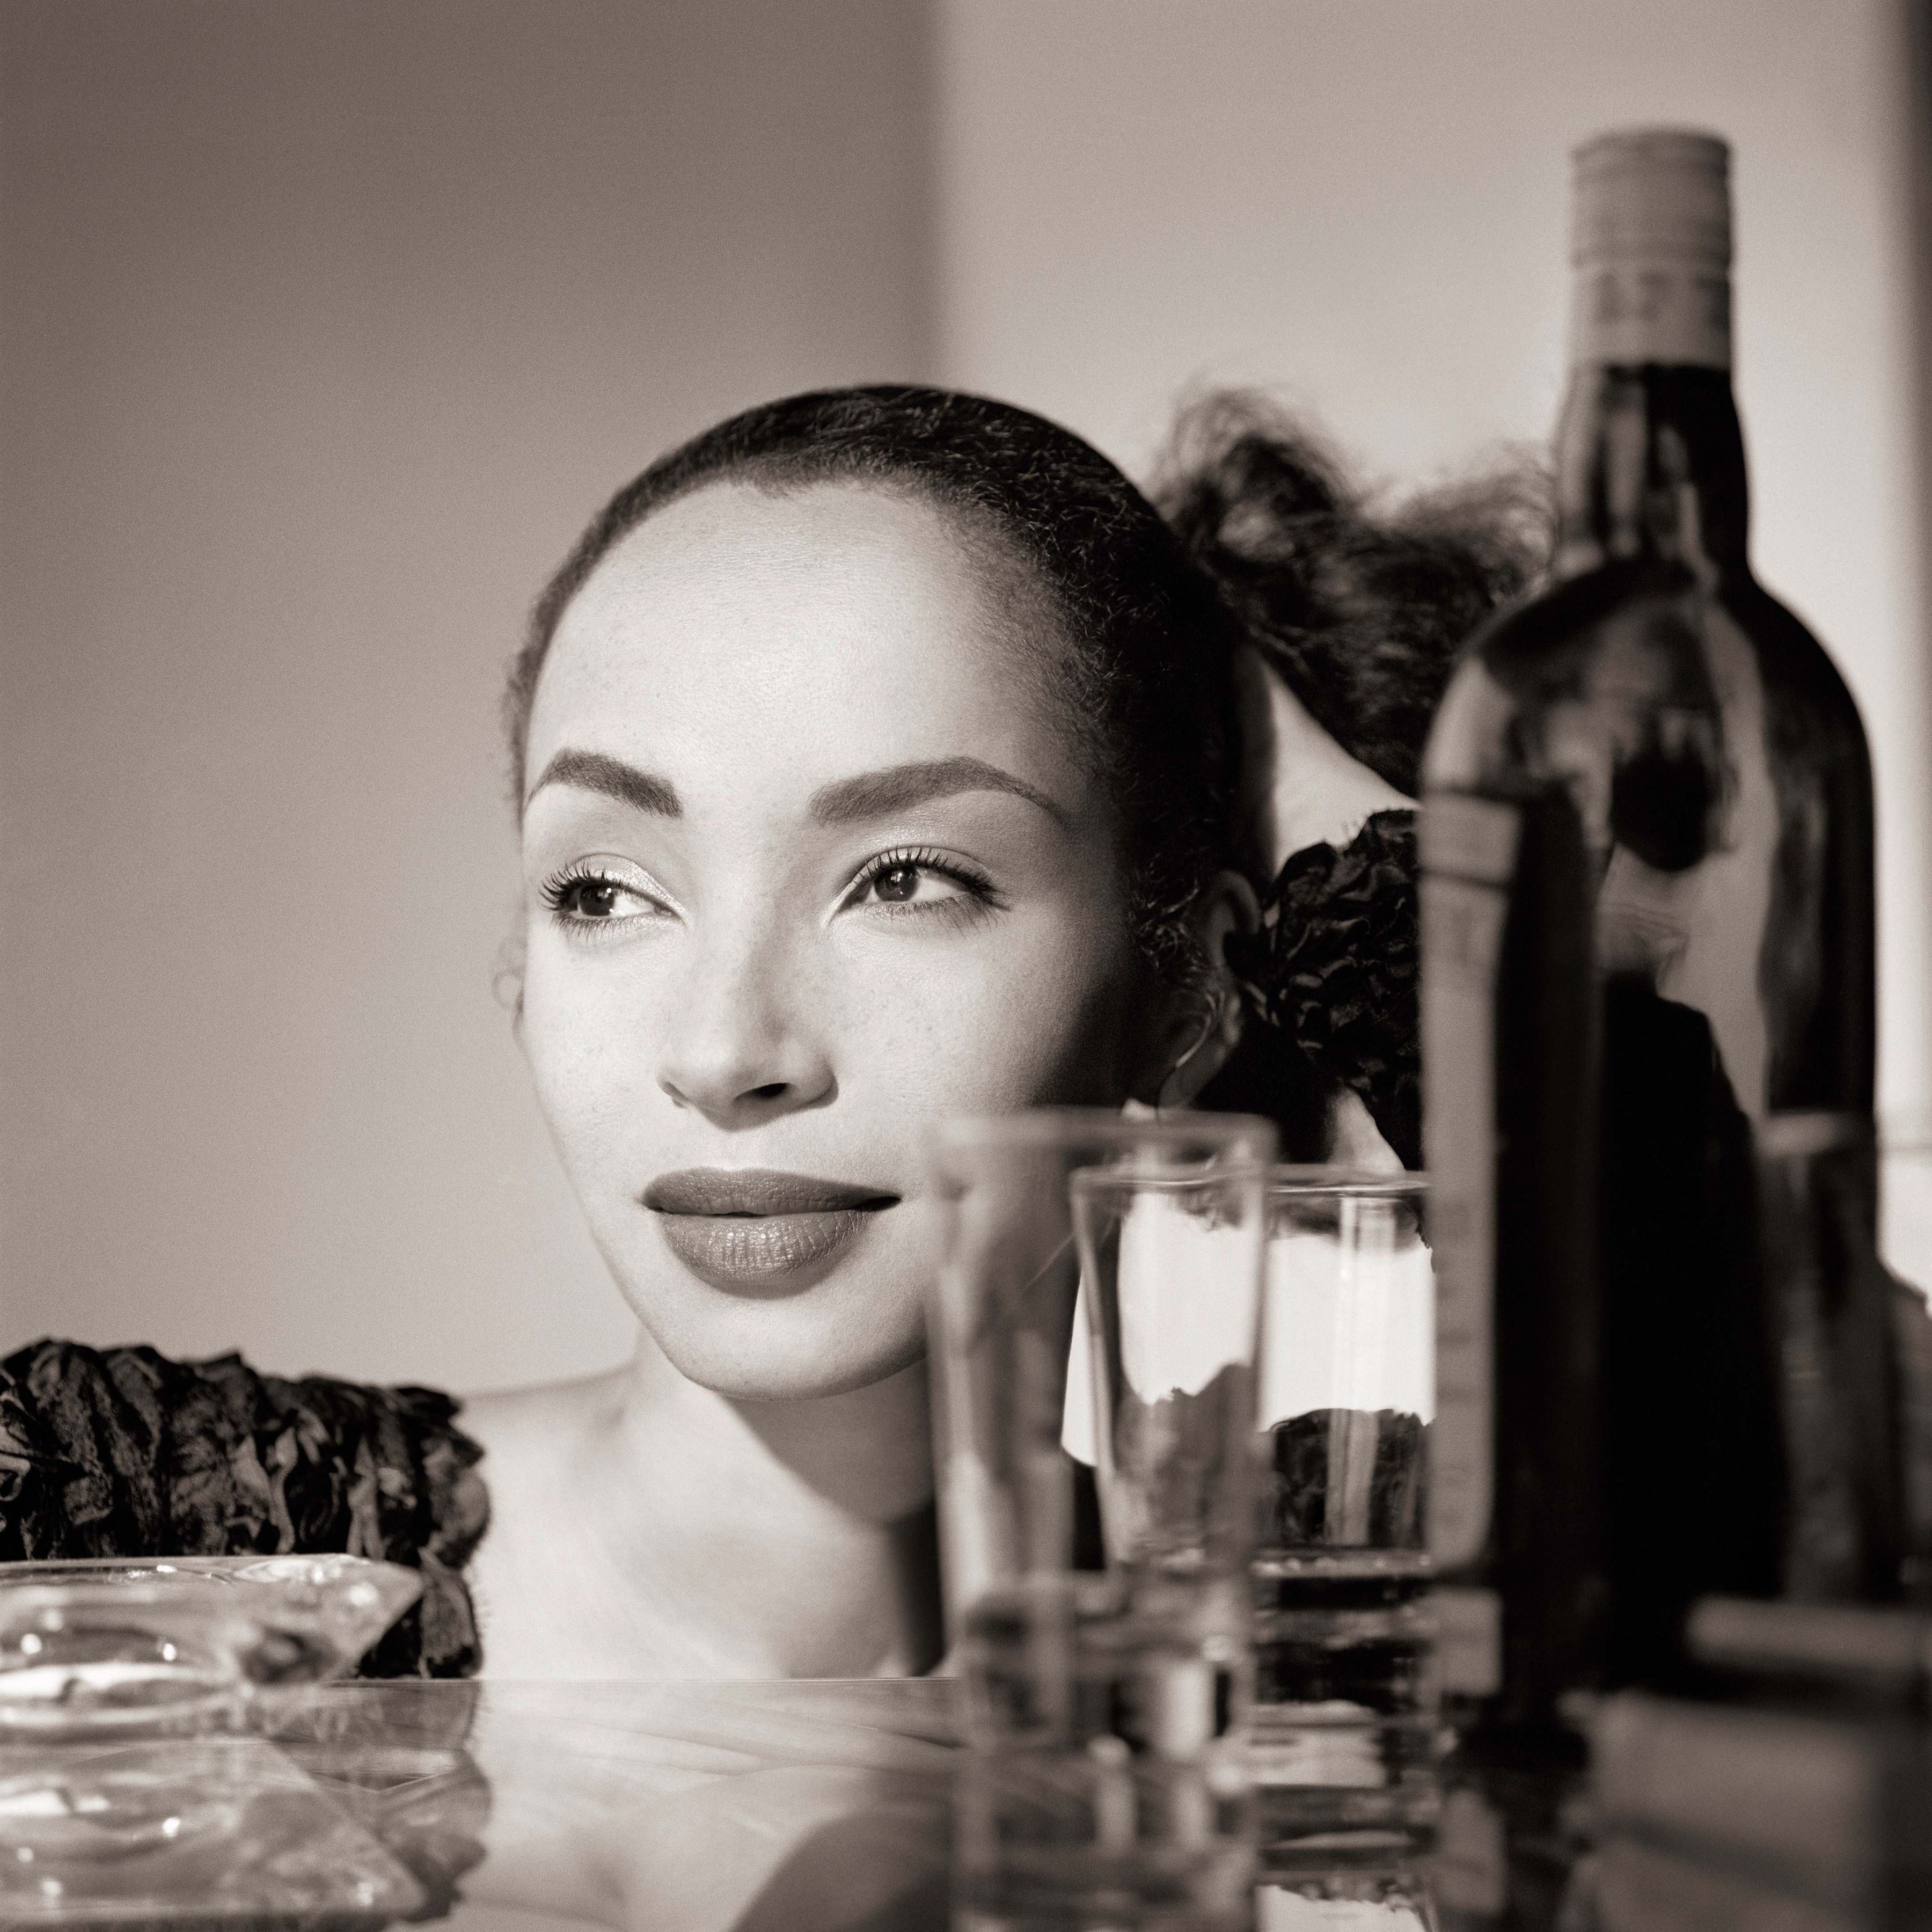 Sade with Cocktails, Los Angeles, 1988, Archival Pigment Print